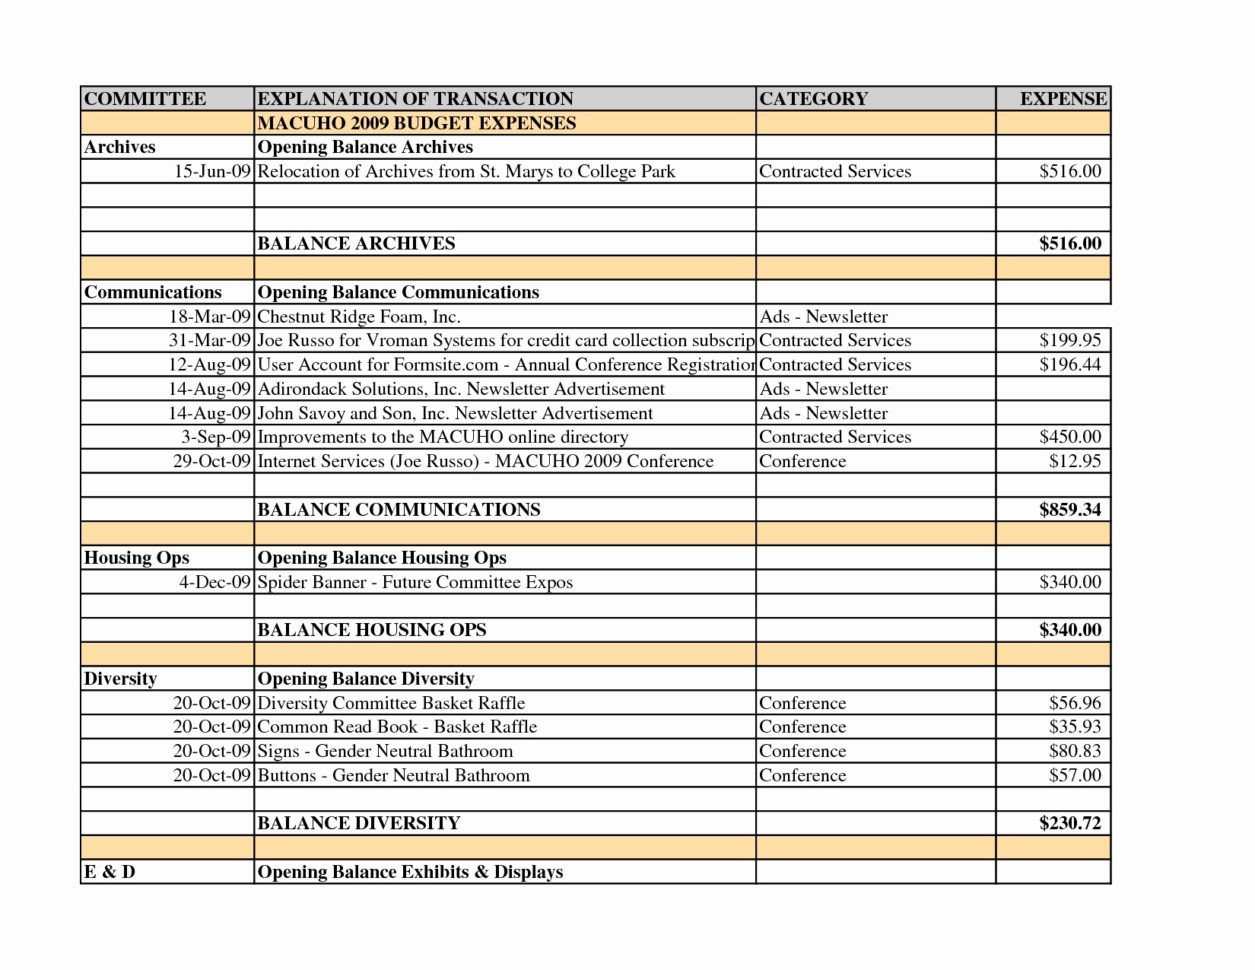 Lawn Care Business Expenses Spreadsheet Lawn Care Pricing Spreadsheet Google Spreadshee Lawn Care